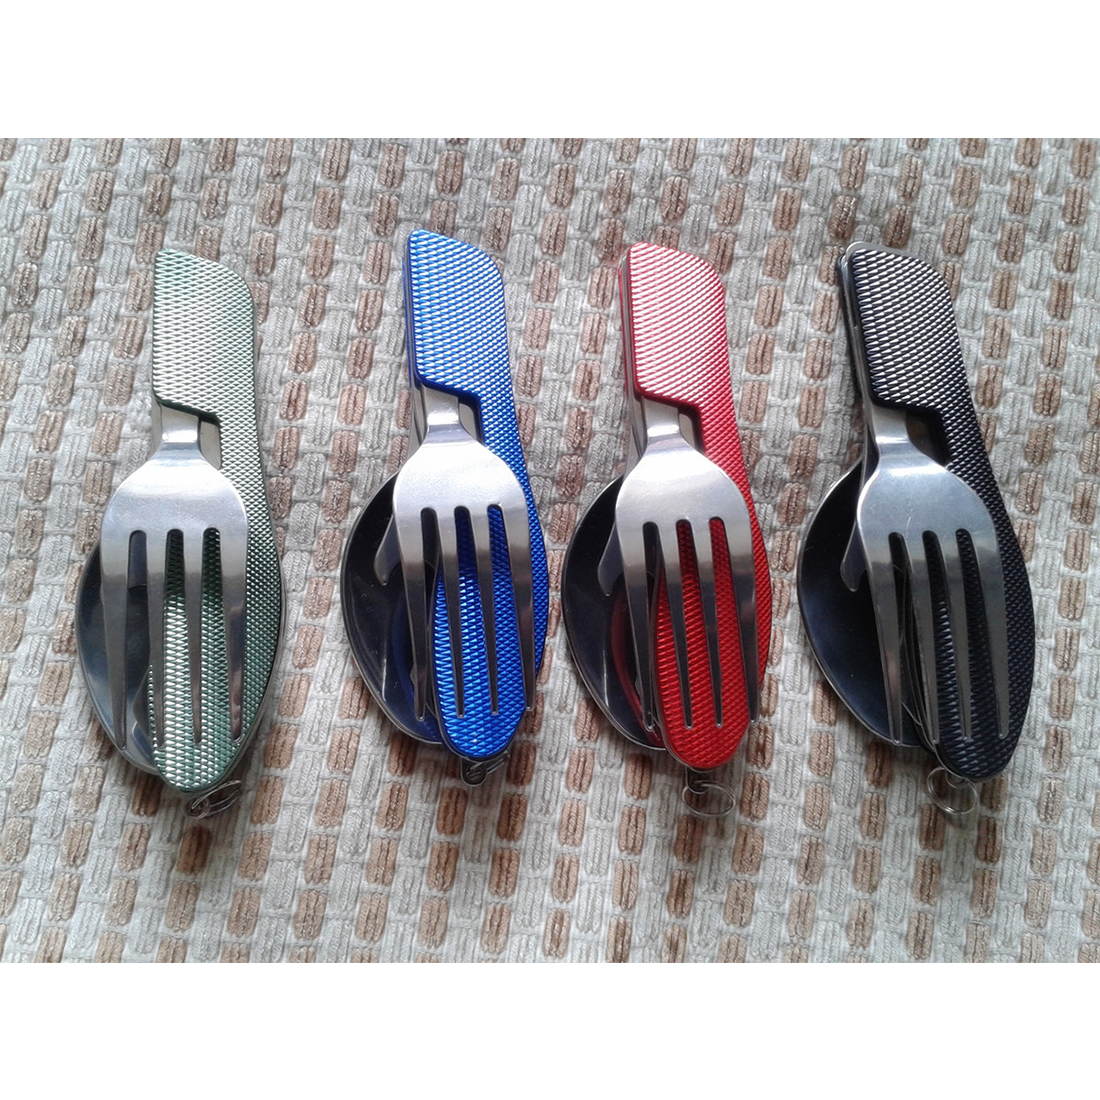 3 in 1 Folding Stainless Steel Spoon Fork Knife Tableware Multitool for Camping mommy love